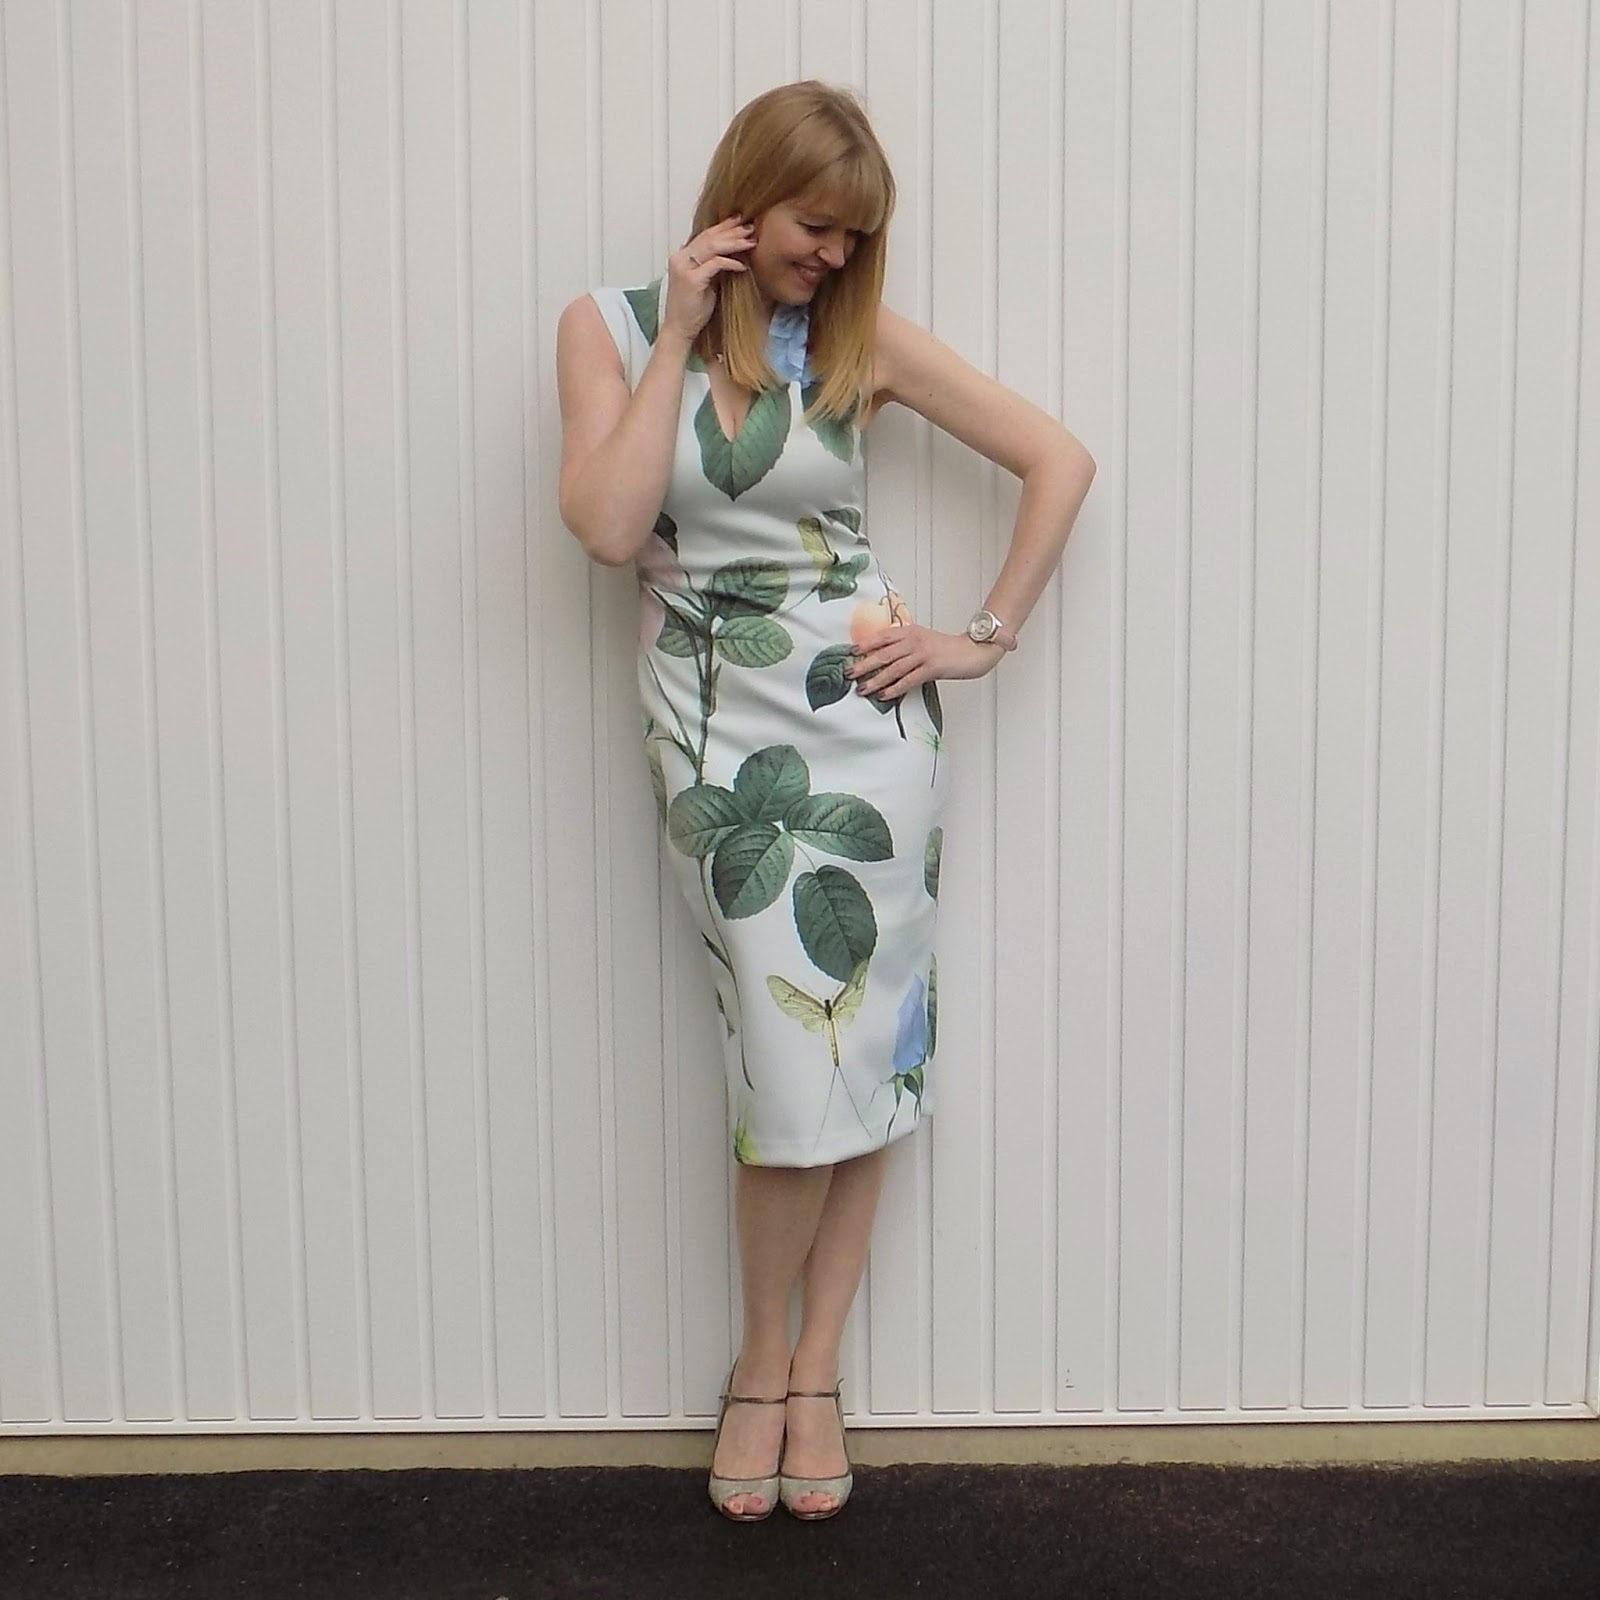 Ted Baker bodycon dress and Jimmy Choos